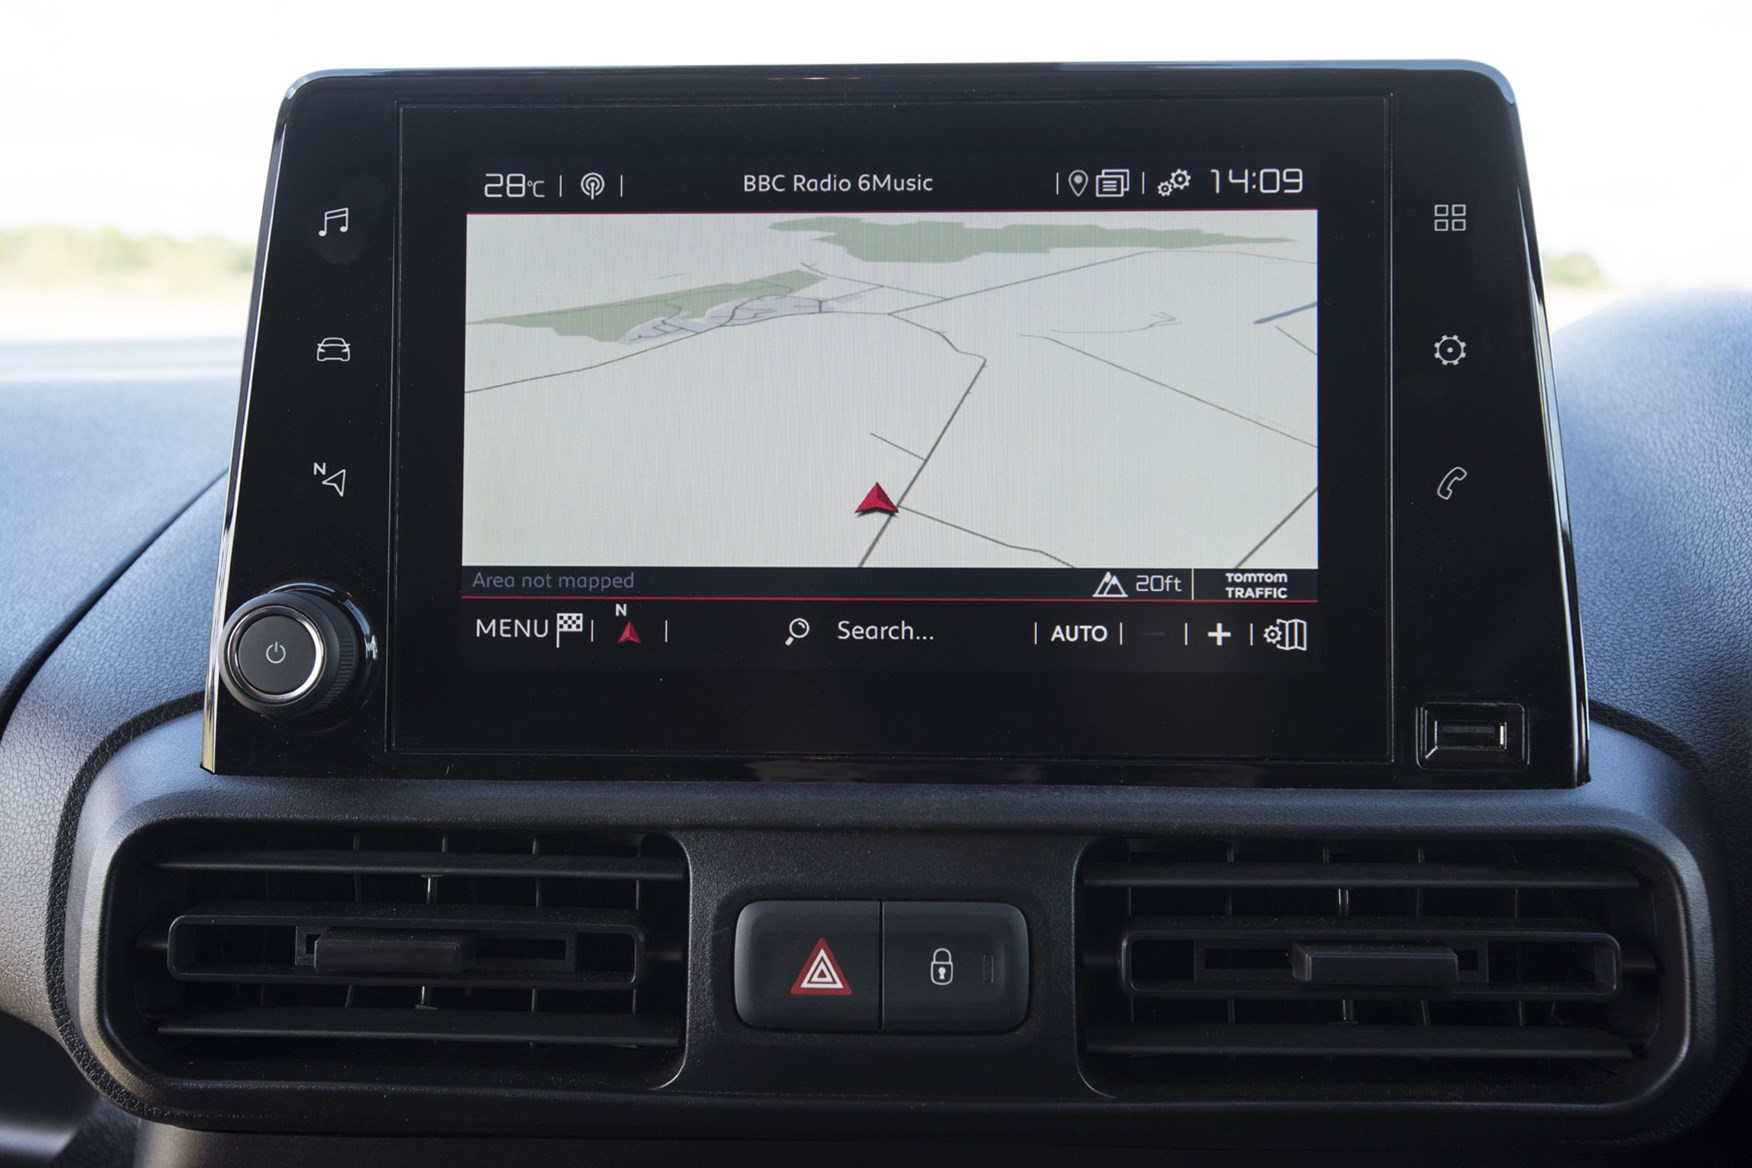 Citroen Berlingo van review - 2019 model, infotainment screen